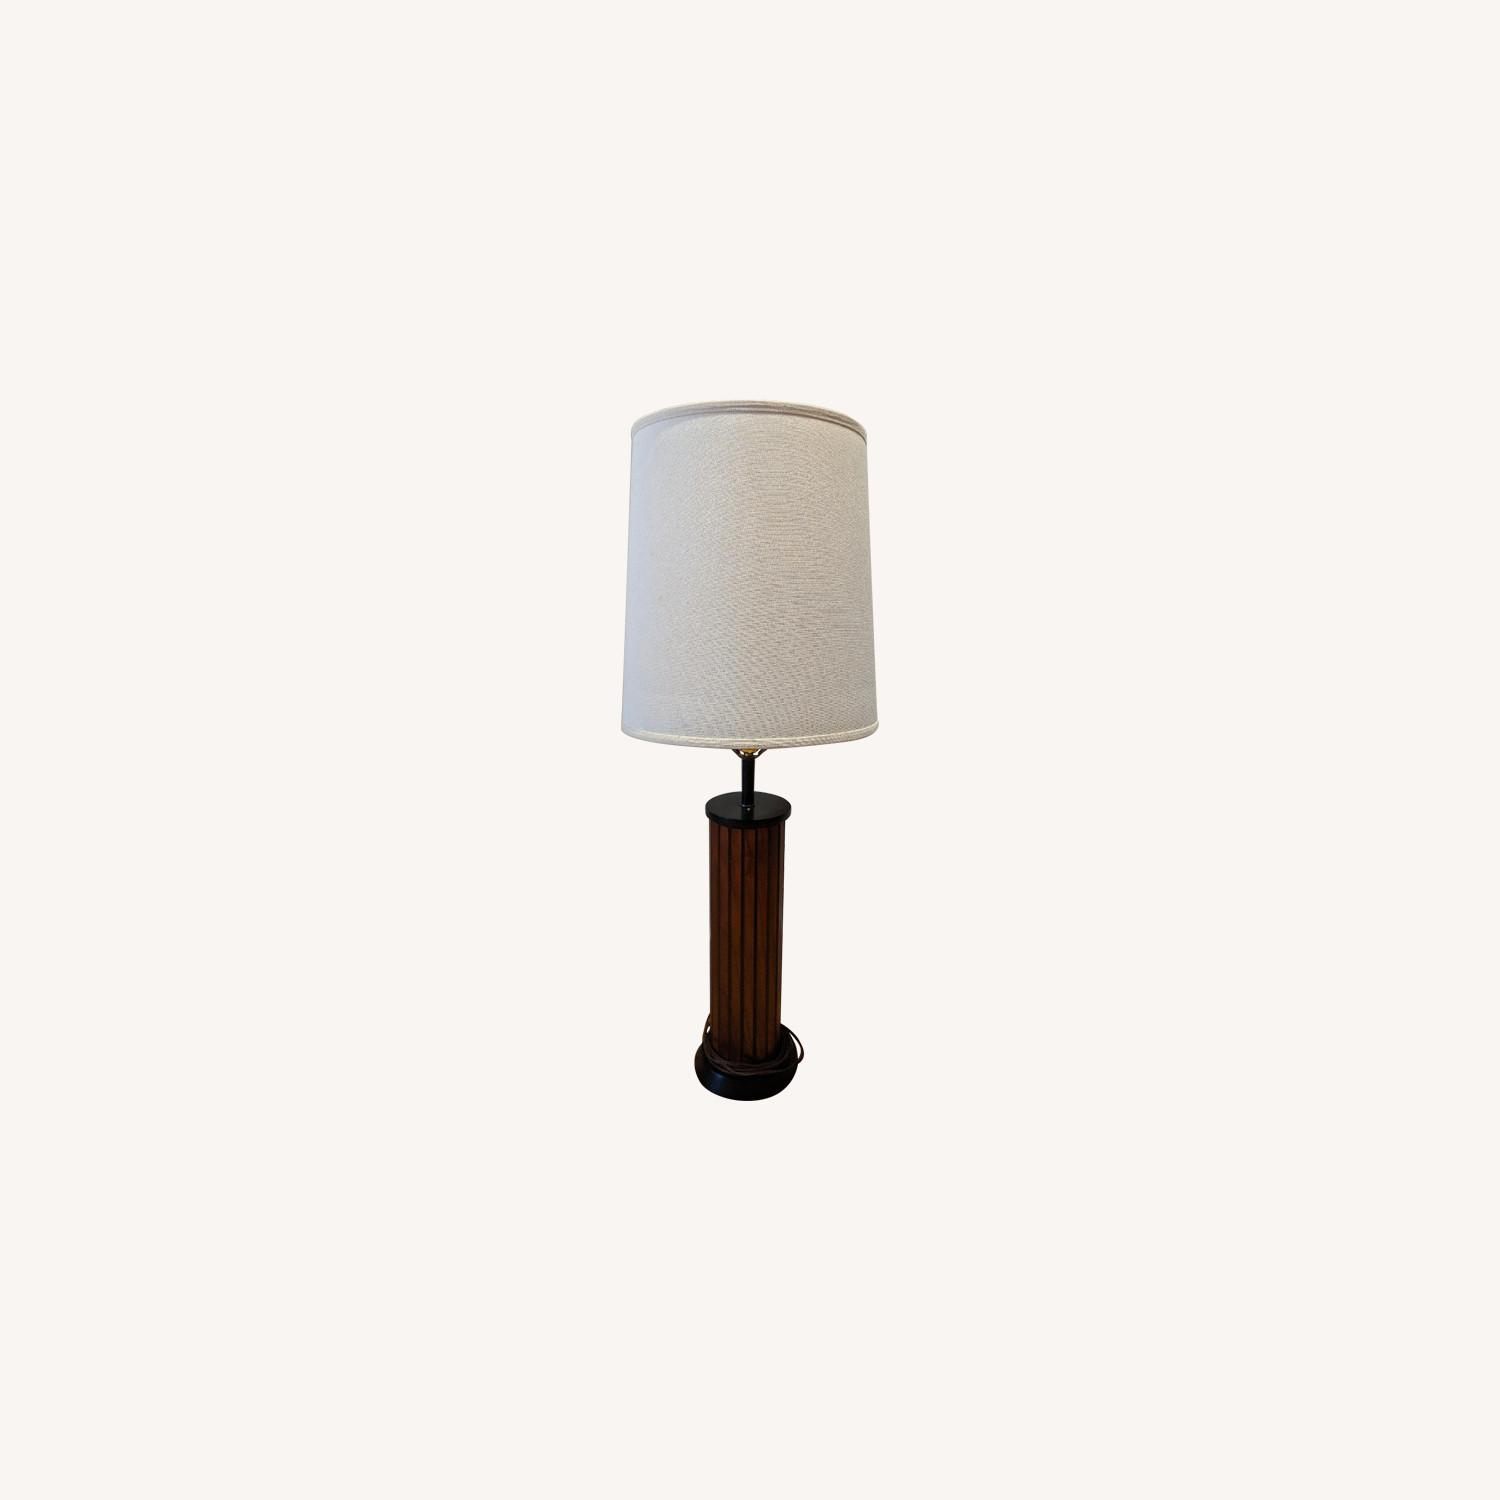 Vintage Mid Century Modern Lamps - image-0